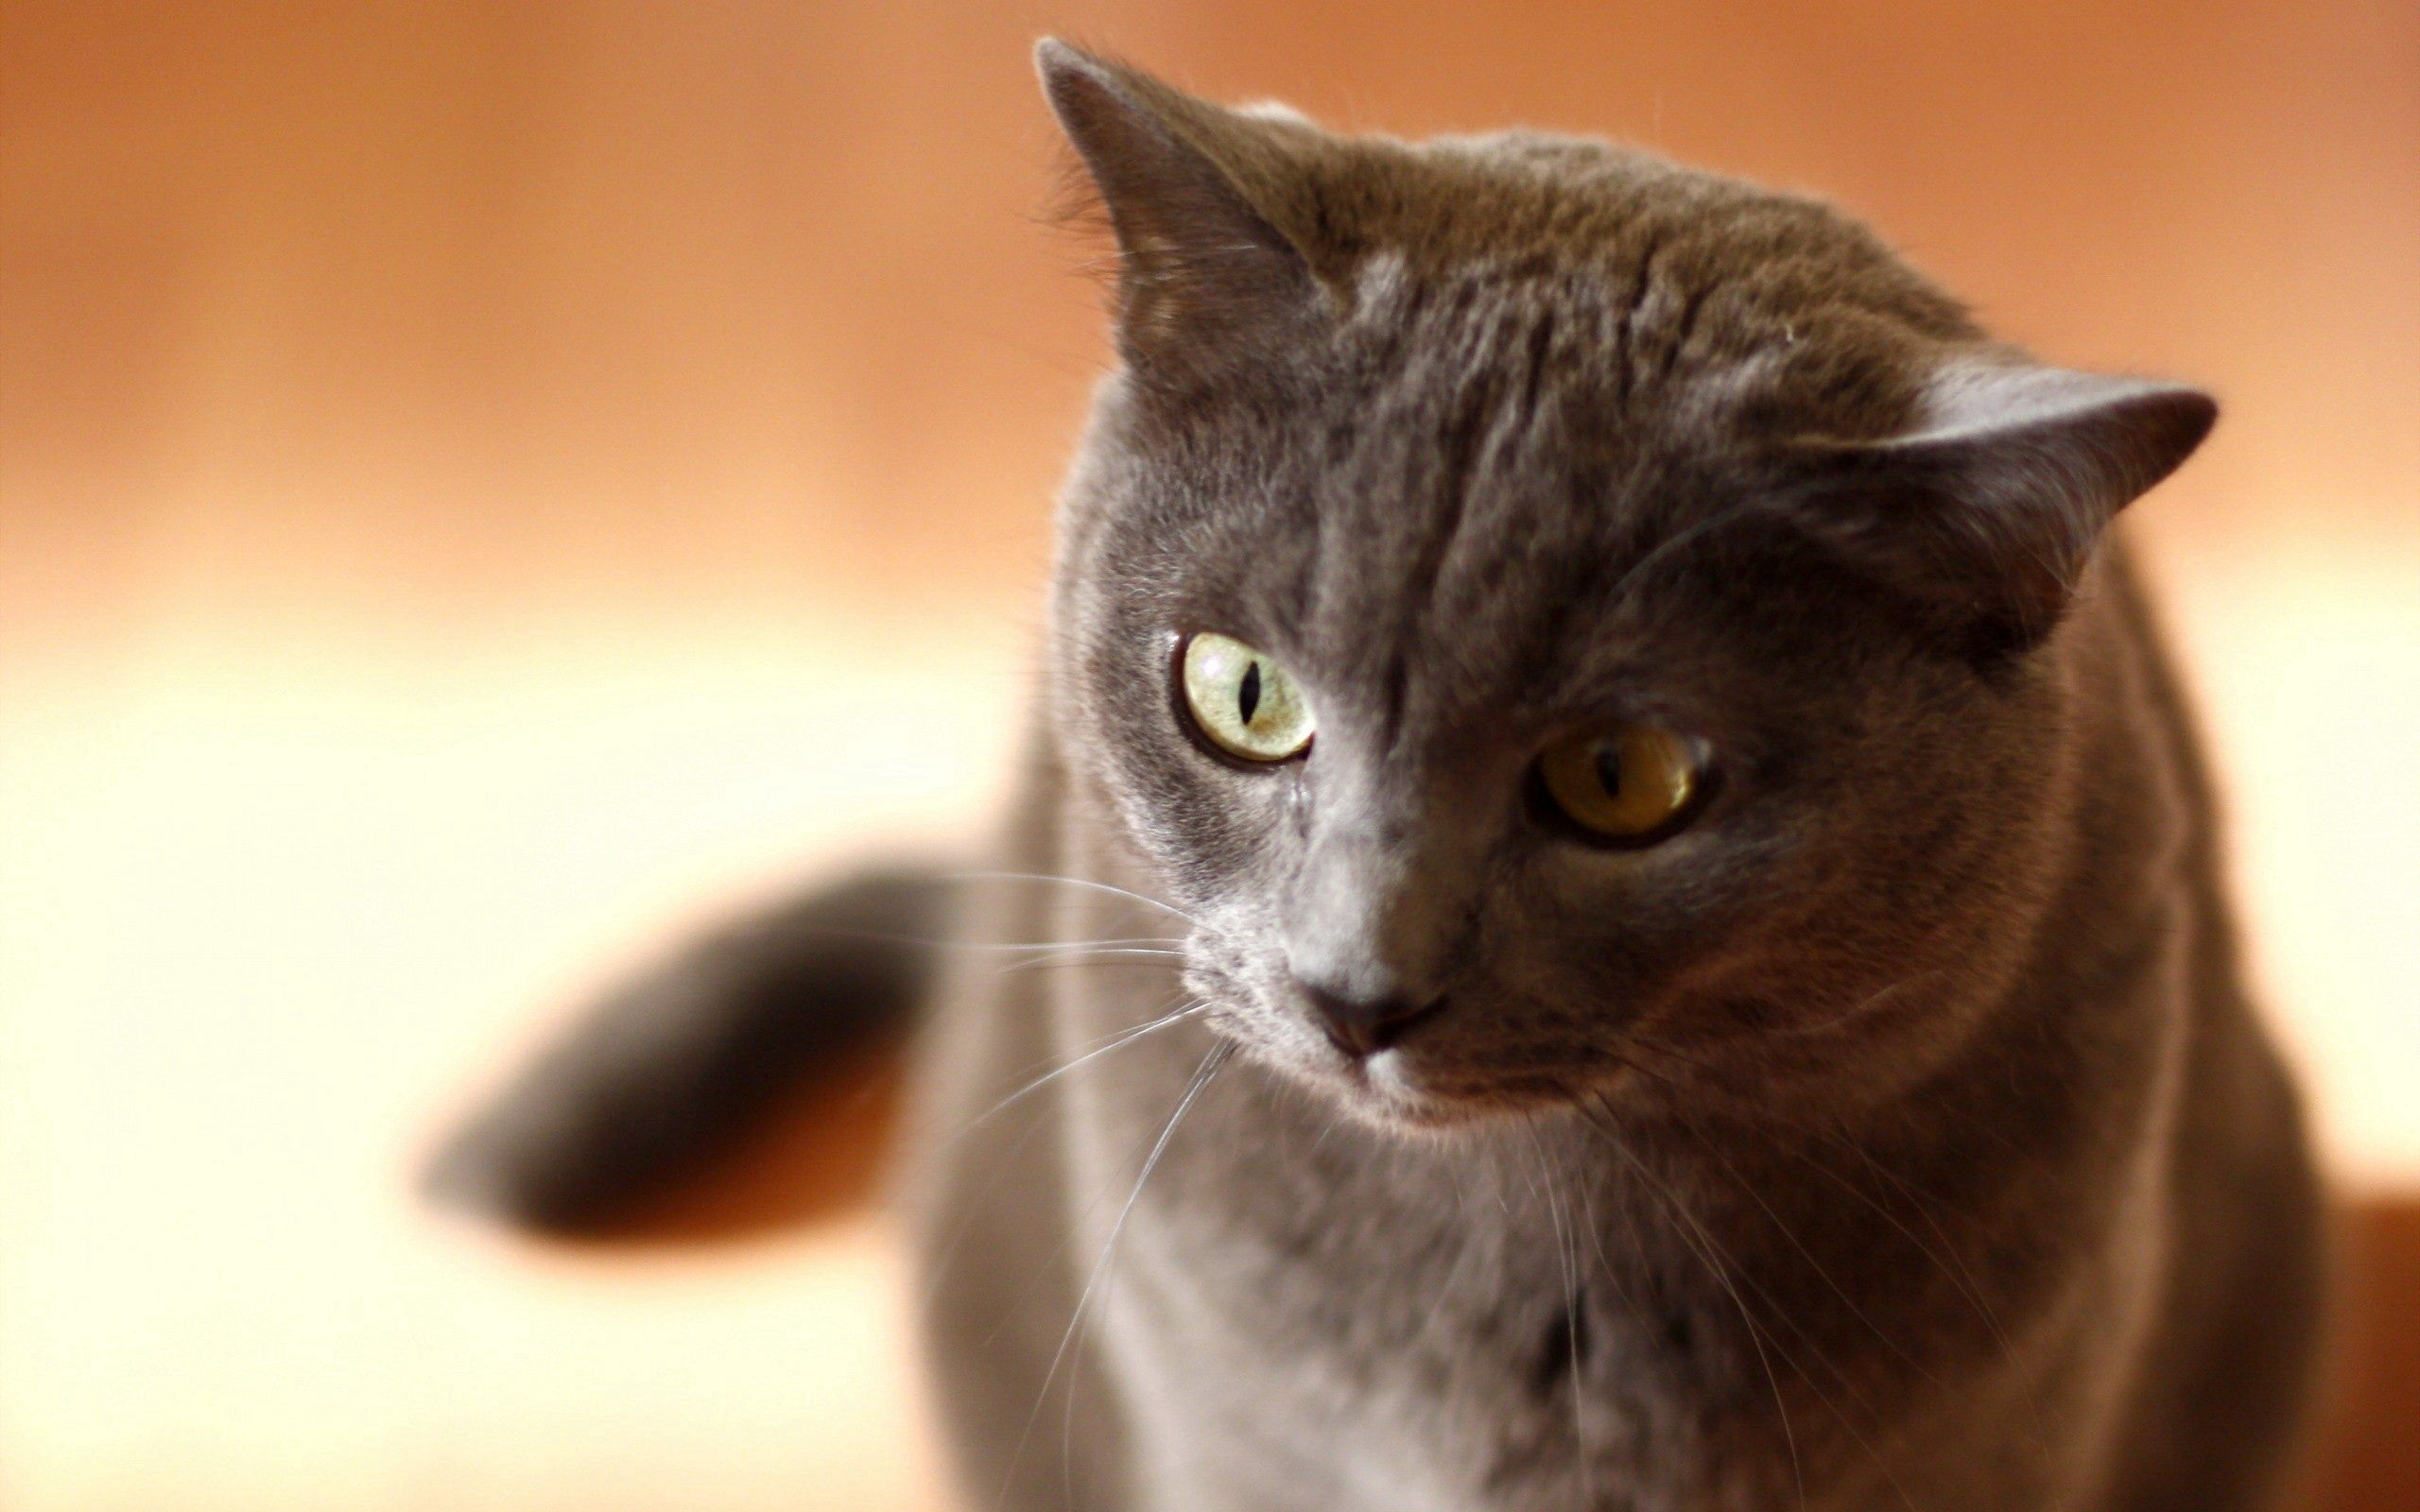 126143 download wallpaper Animals, Cat, Muzzle, Grey, Sight, Opinion screensavers and pictures for free